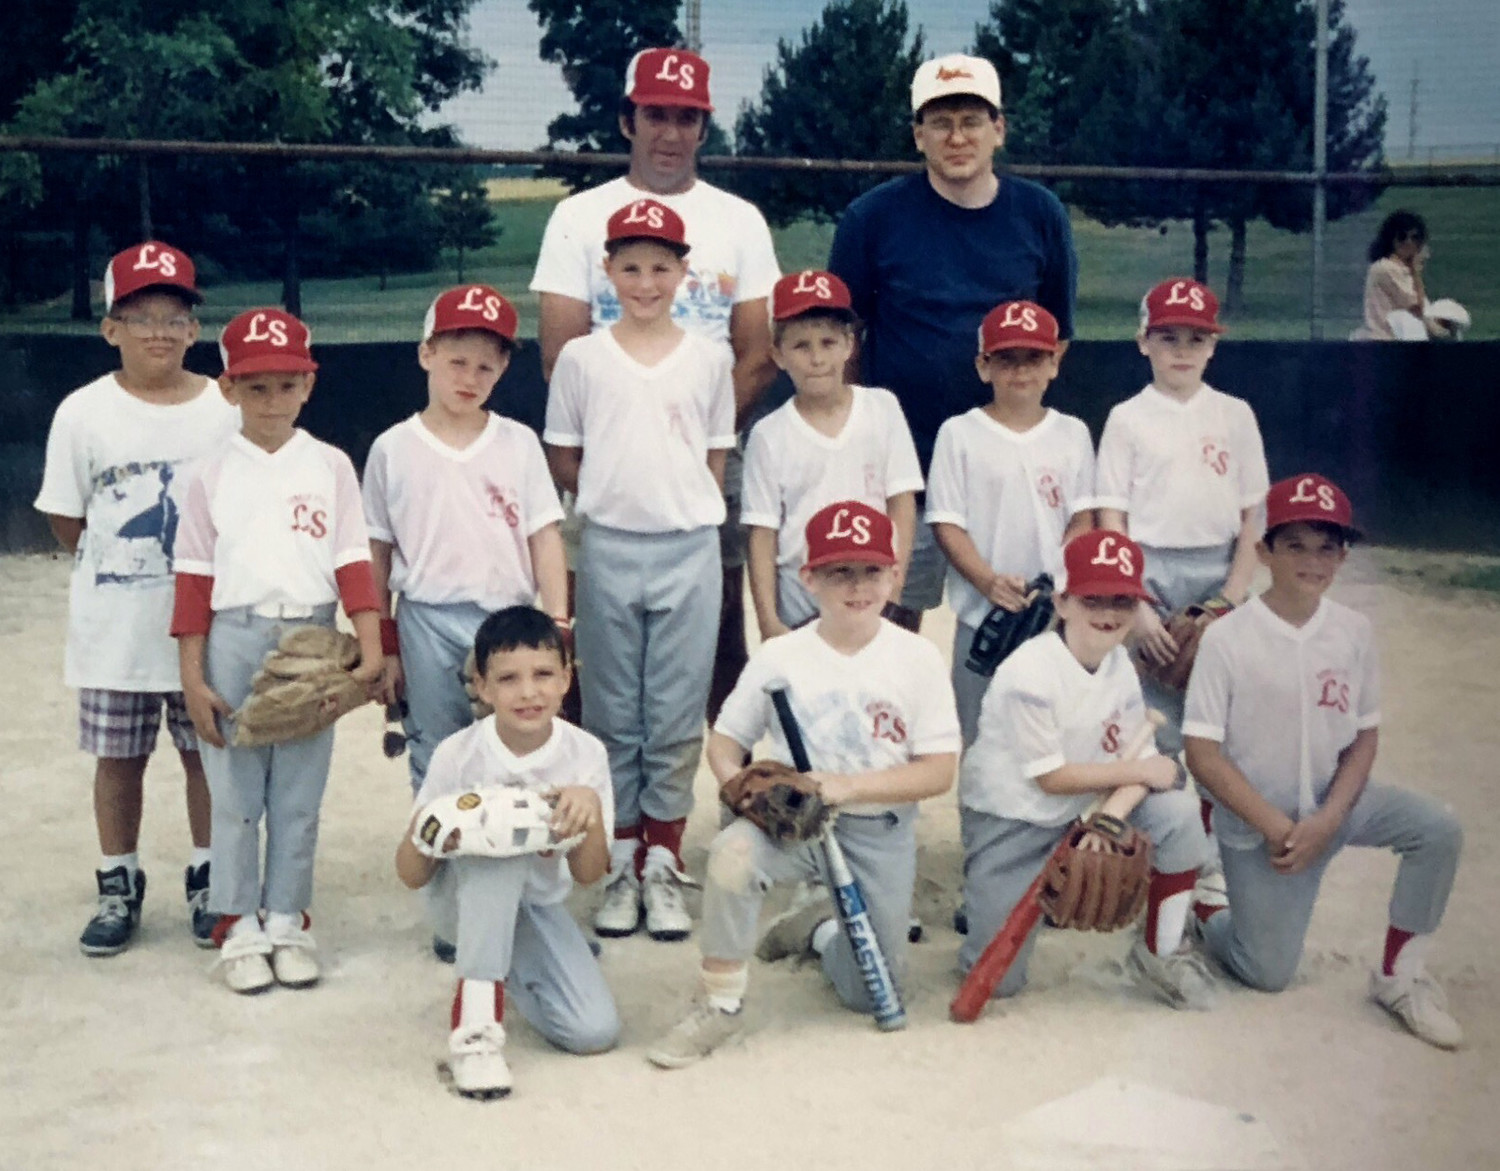 Kunkel PTA recently completed an undefeated season by logging a 17-0 record in the East Dauphin T-Ball League. Pictured in the front row are Andrew Carnes, Joe Koharski, Christine Dahany and Rob Carpen. Second row: Todd Huber (assistant coach), Adrian Huber, Stan Swaintek, Matt Siffrinn, Mike Gratkowski, Marc Frailey and Rich Moore. Back row: Tom Carpen (coach) and Stan Swaintek (manager). Absent from the picture were team members Jessie Vorodi, Zach Hoppes and coaches Dick Huber and Bob Gratkowski.